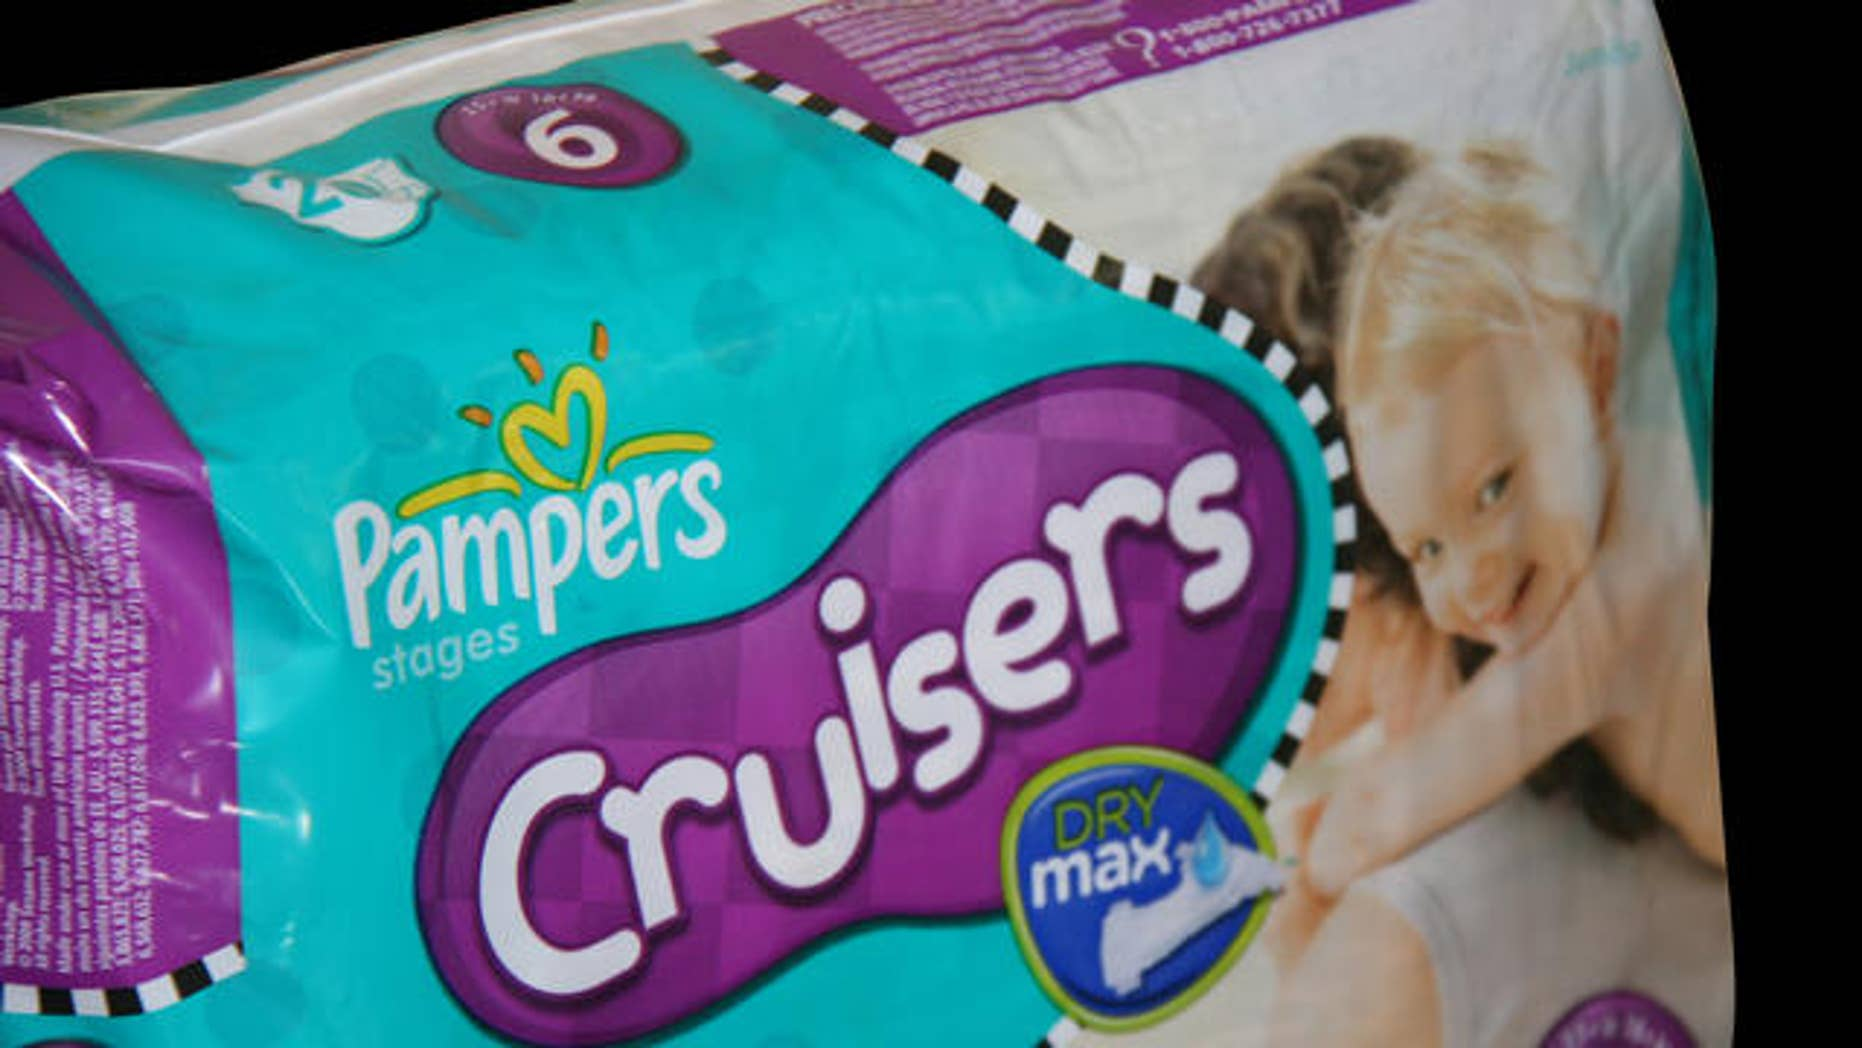 A U.S. congresswoman in Connecticut wants to boost the economy by offering free diapers to low-income families.